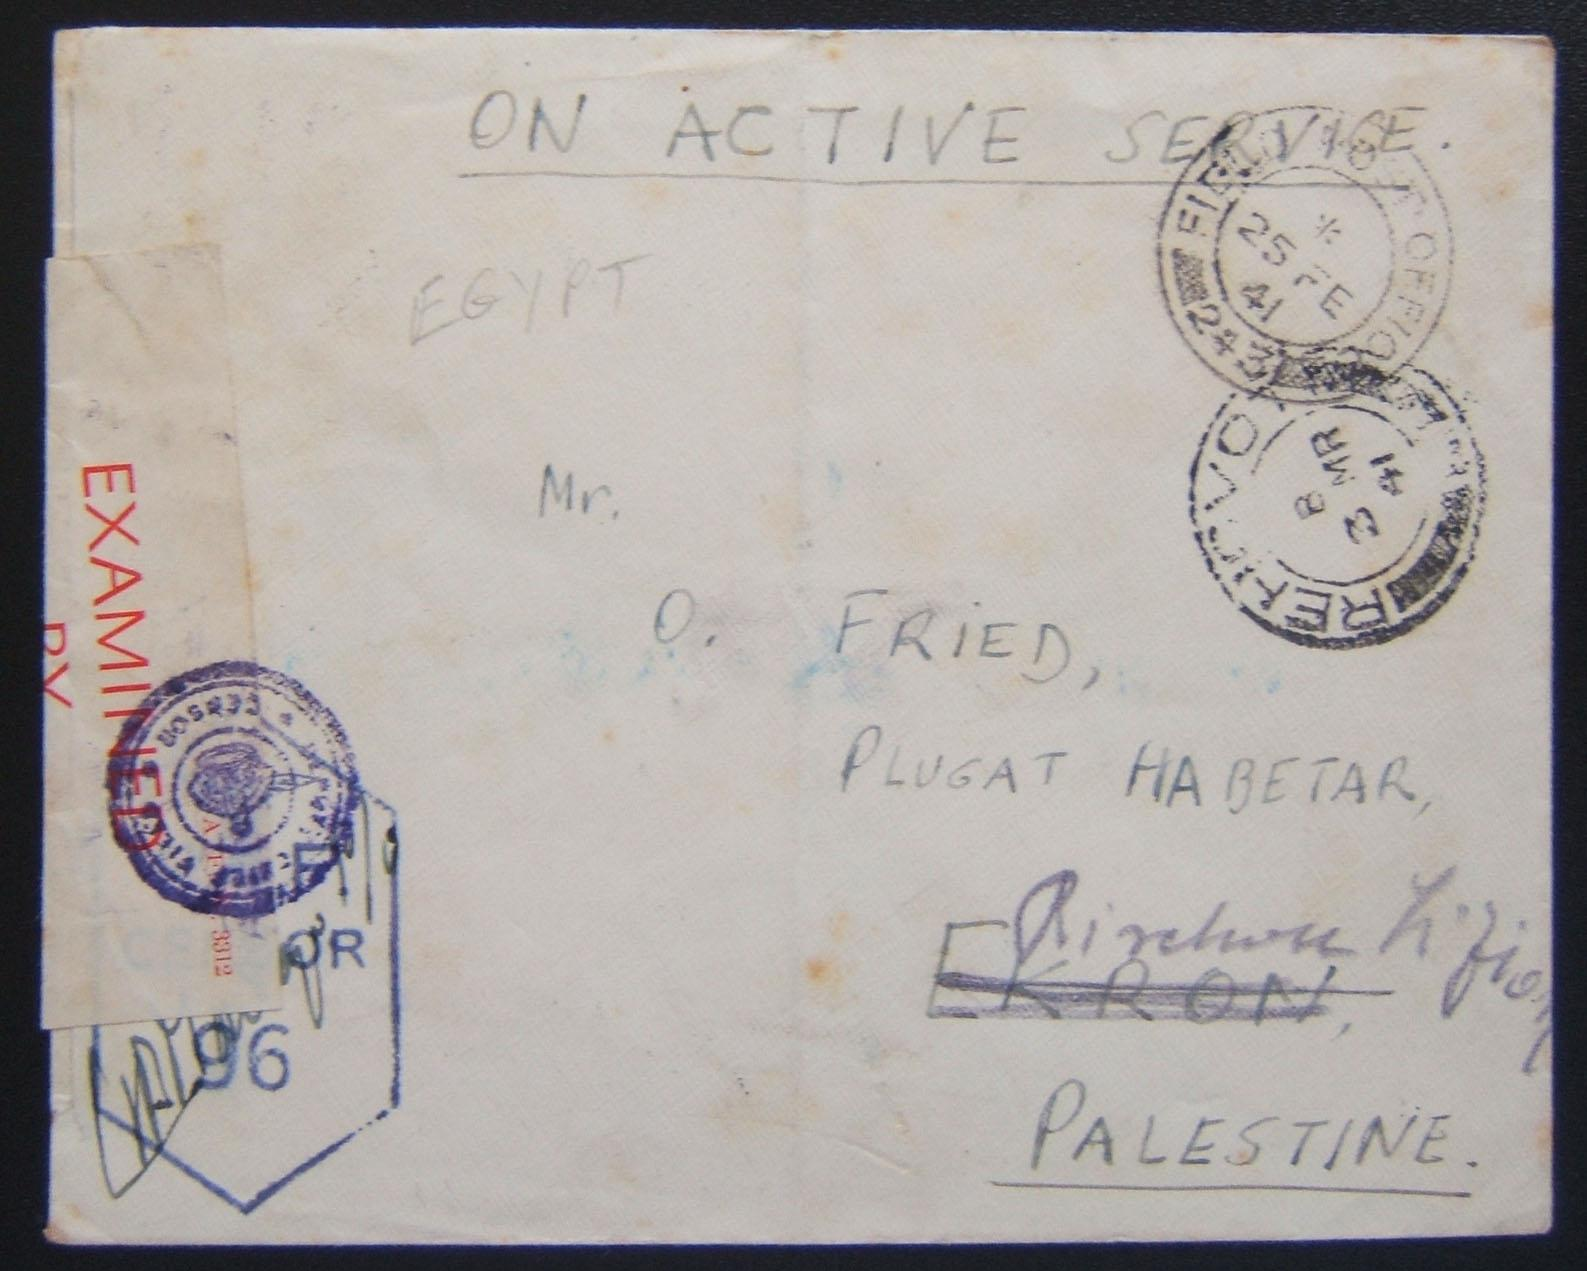 [Jewish?] soldier's mail: stampless cover ex FPO 243 (7th Armoured Division - Egypt) to civilian in EKRON, 25 FE 41, backstamped RECHOVOT 2 MR 41 where re-routed to Rishon Le Zion